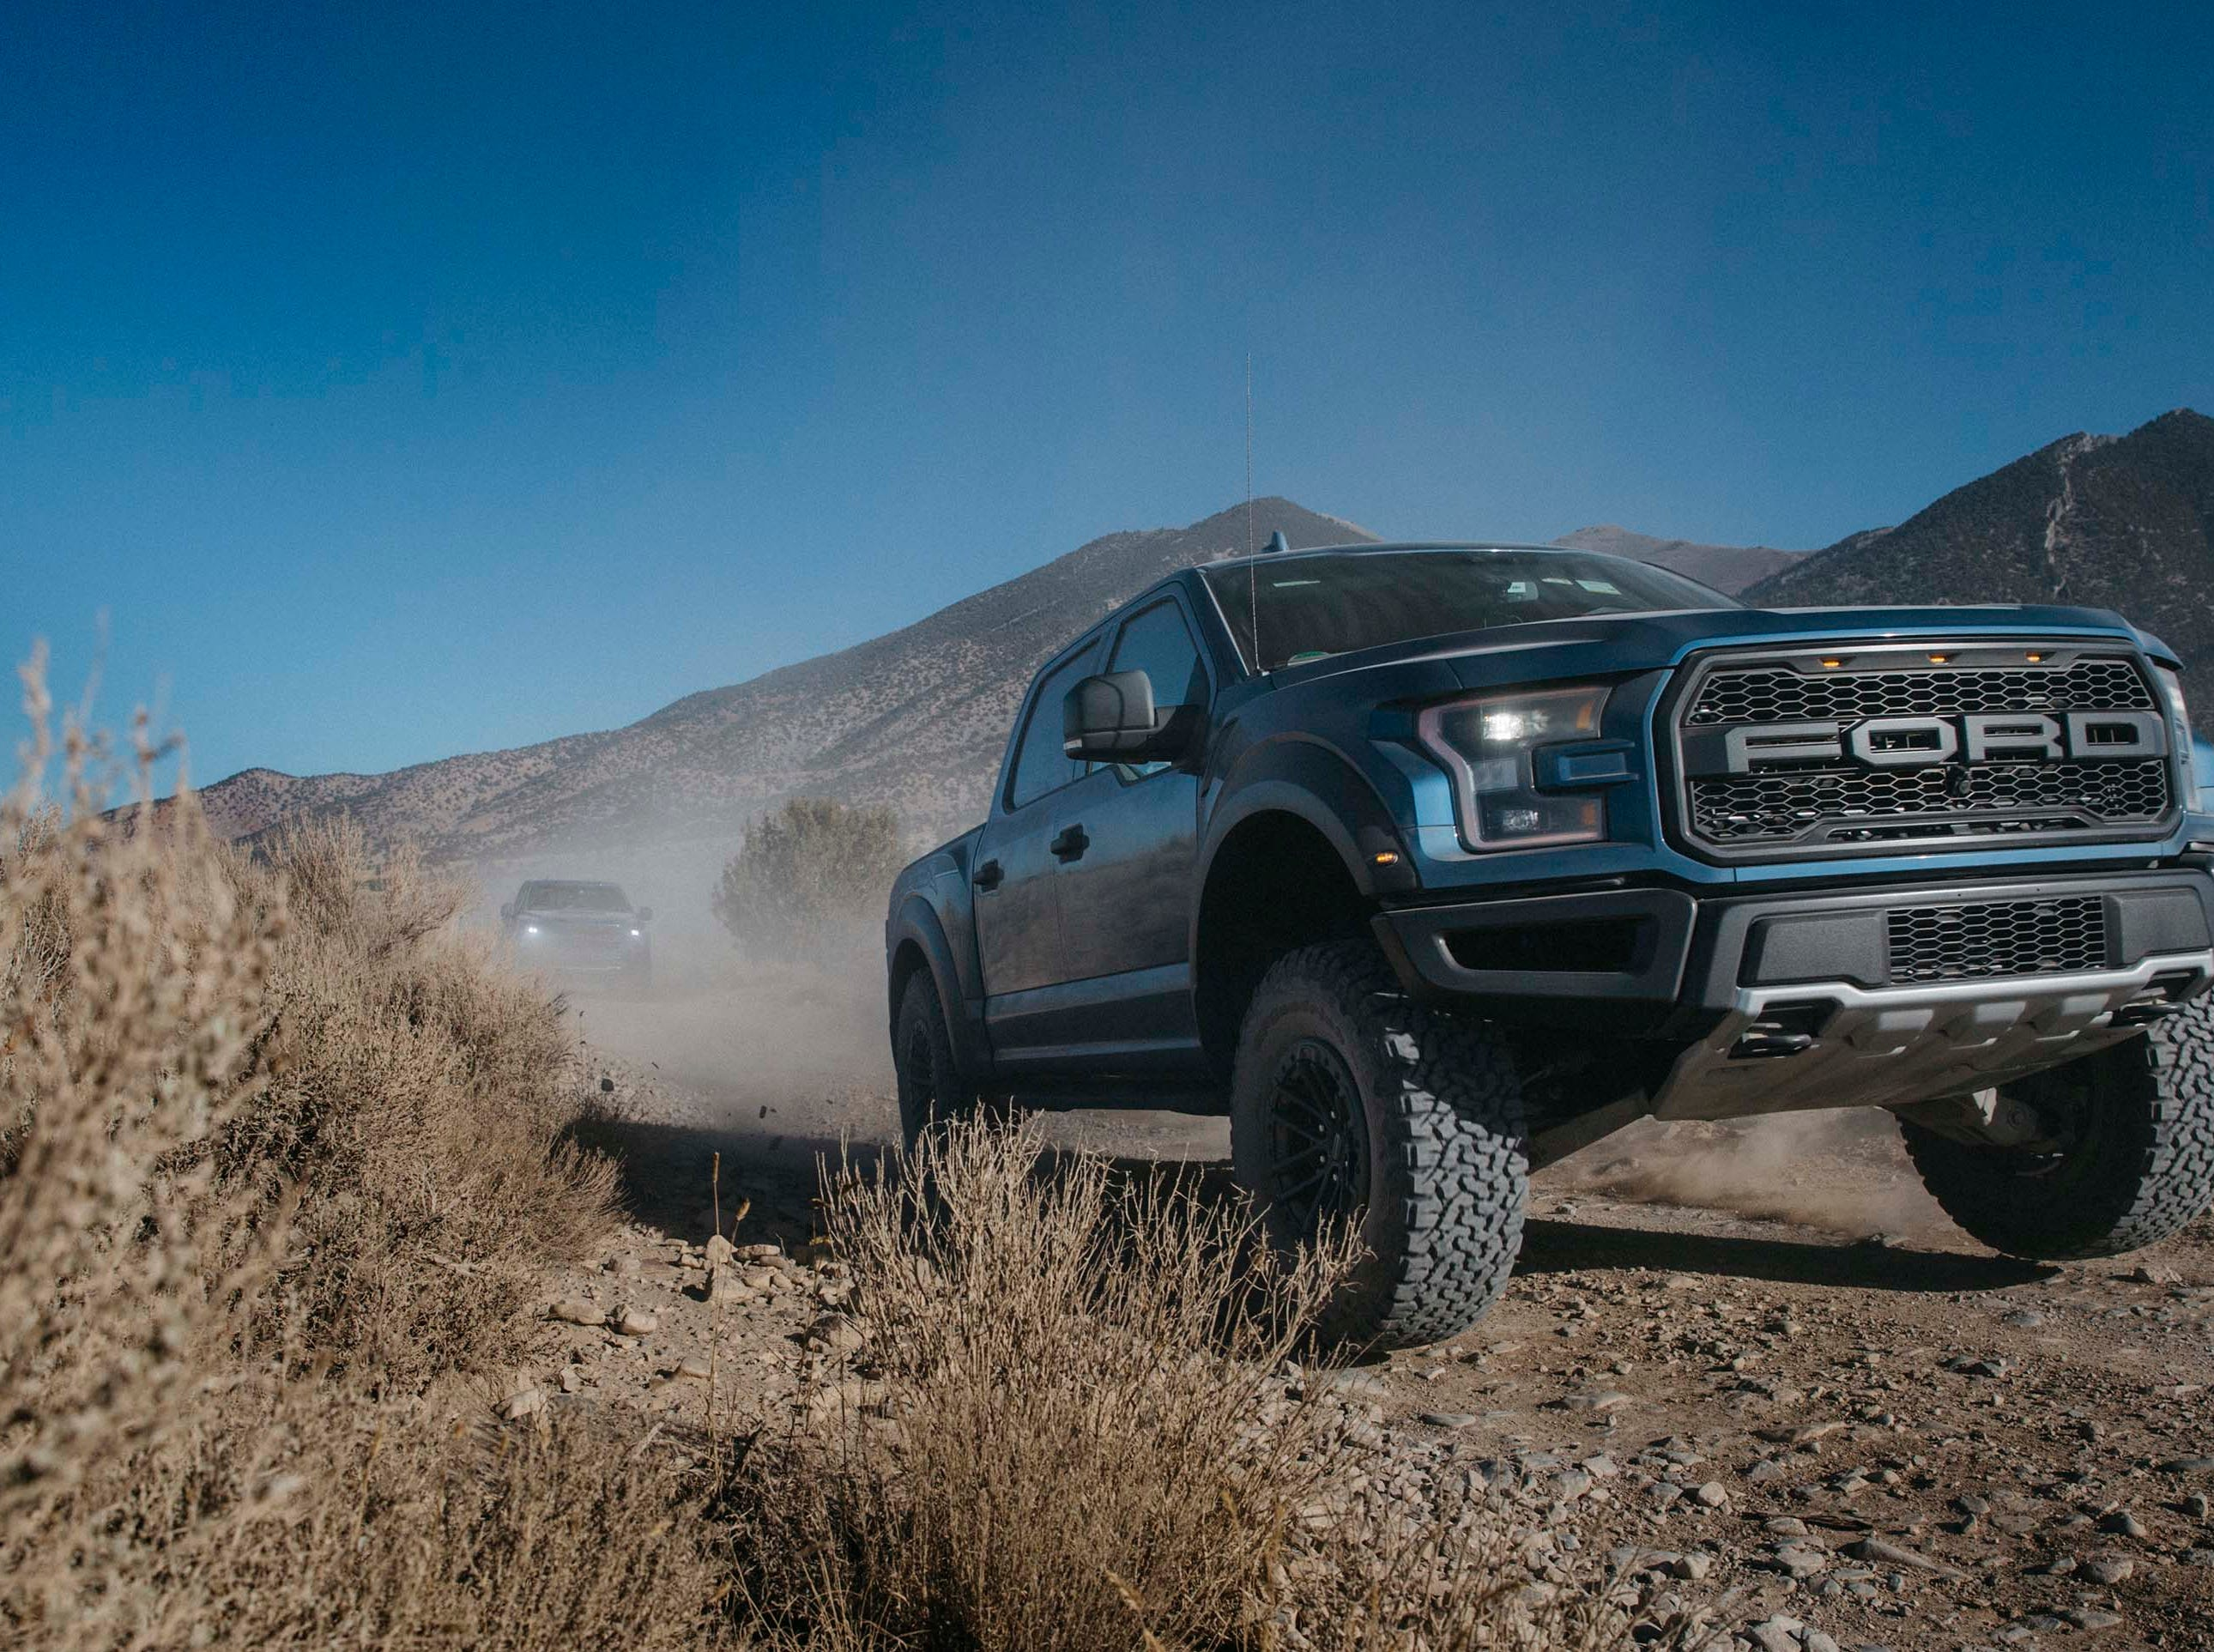 The 2019 Ford F-150 Raptor is capable of speeds of over 100 mph across open desert. Armed with Fox Live Valve shocks, the big beast is remarkably composed at such speeds.